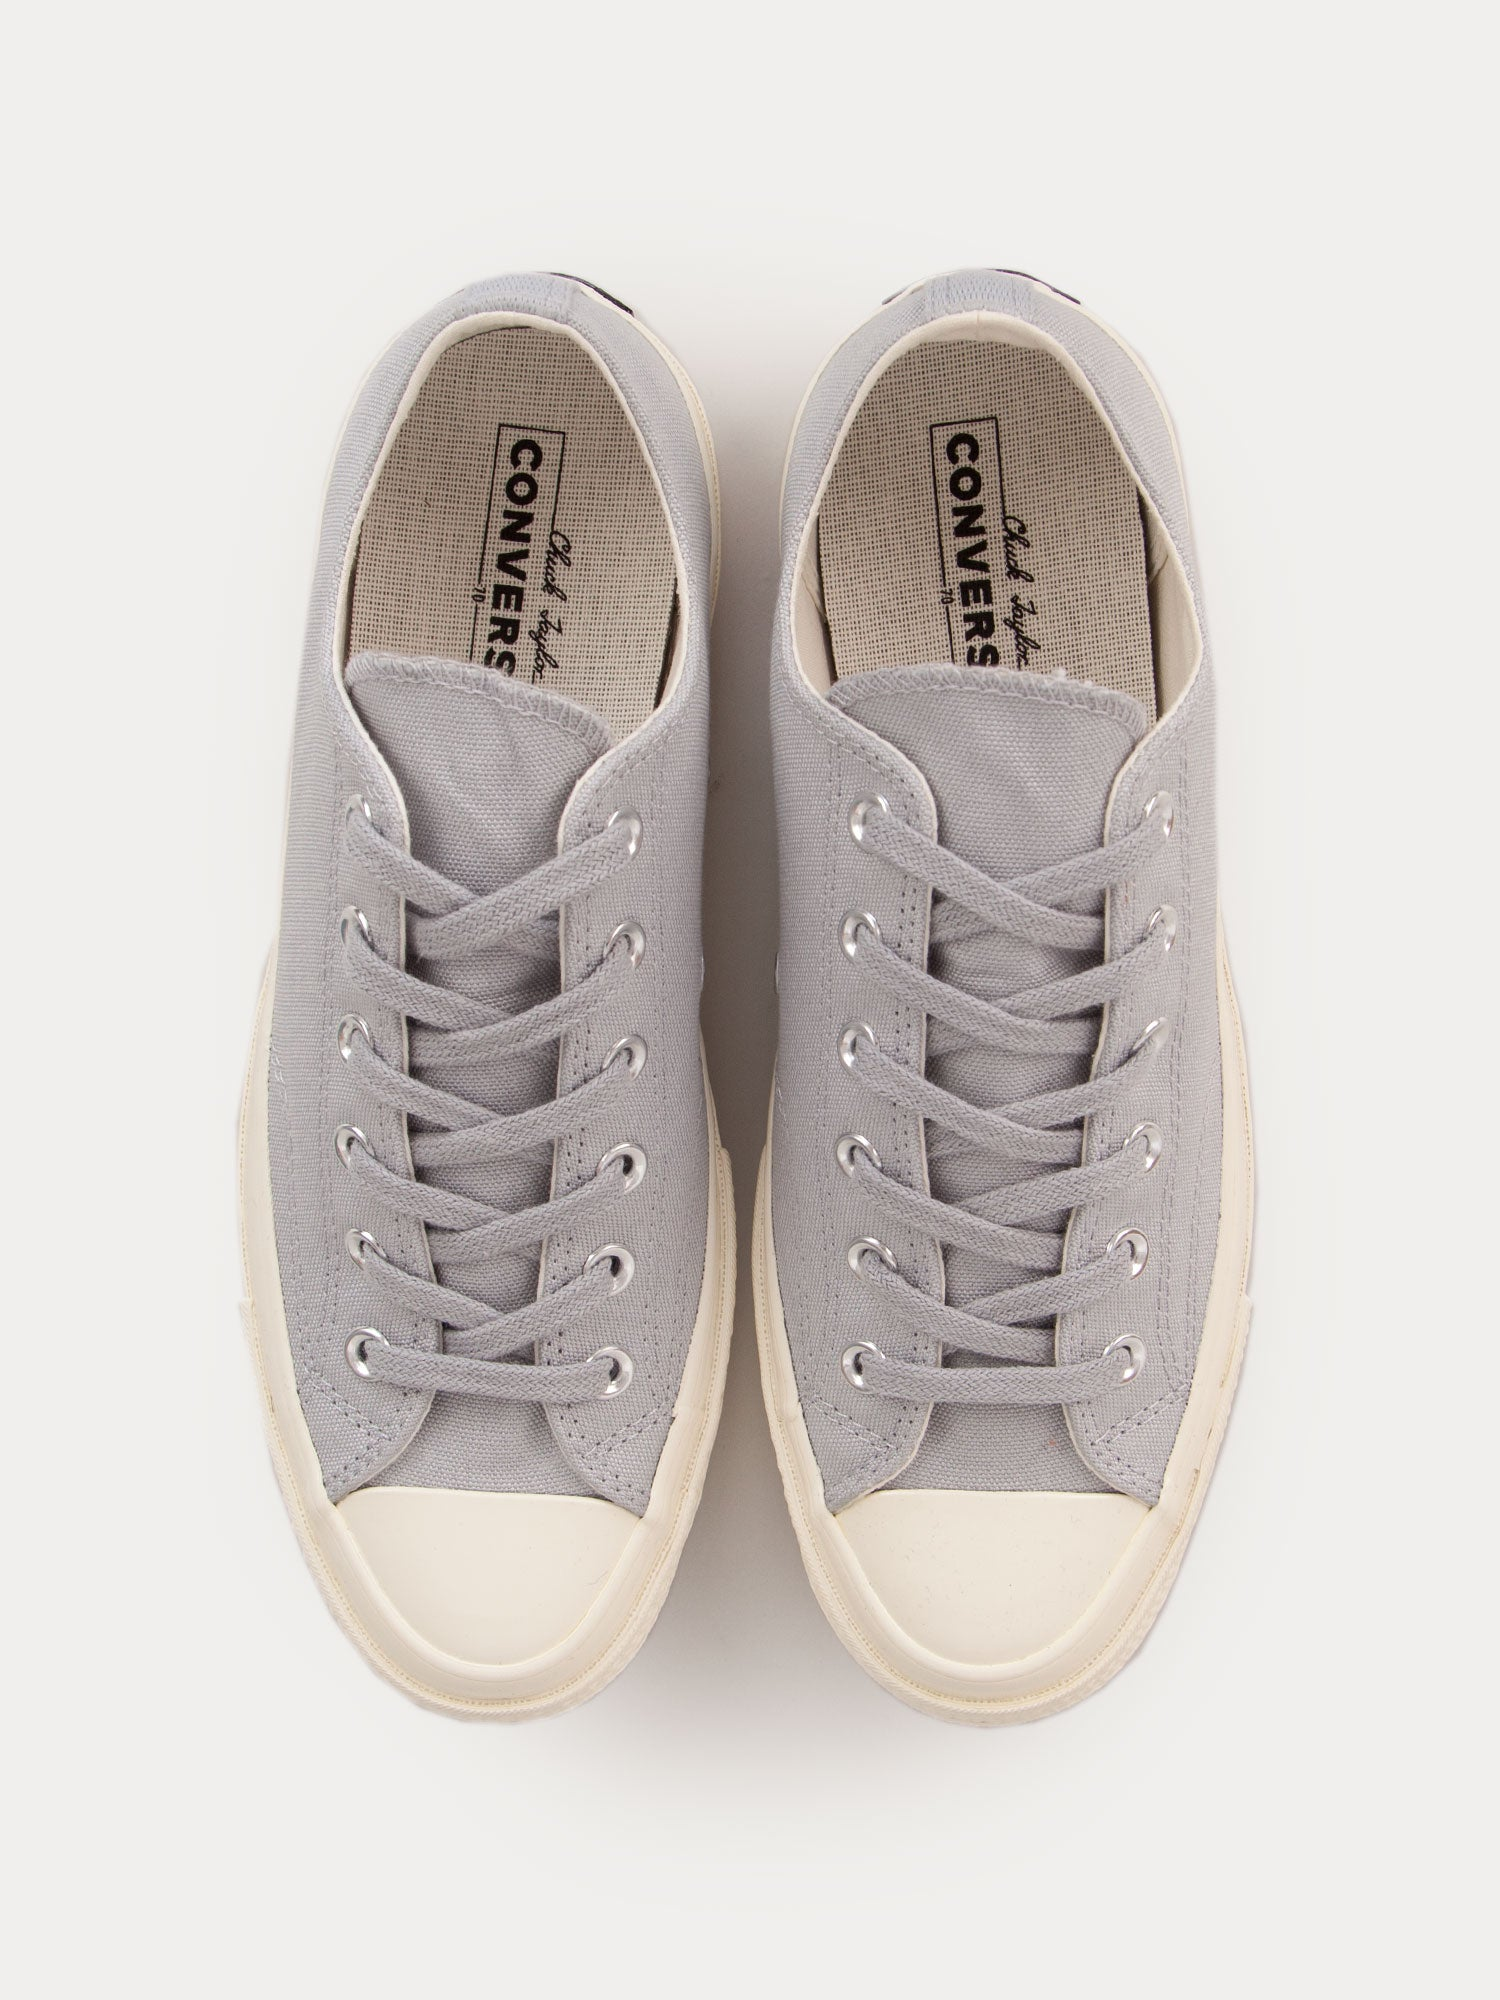 Converse Chuck Taylor All Star 70 Ox (Wolf Grey) 80d64aae7